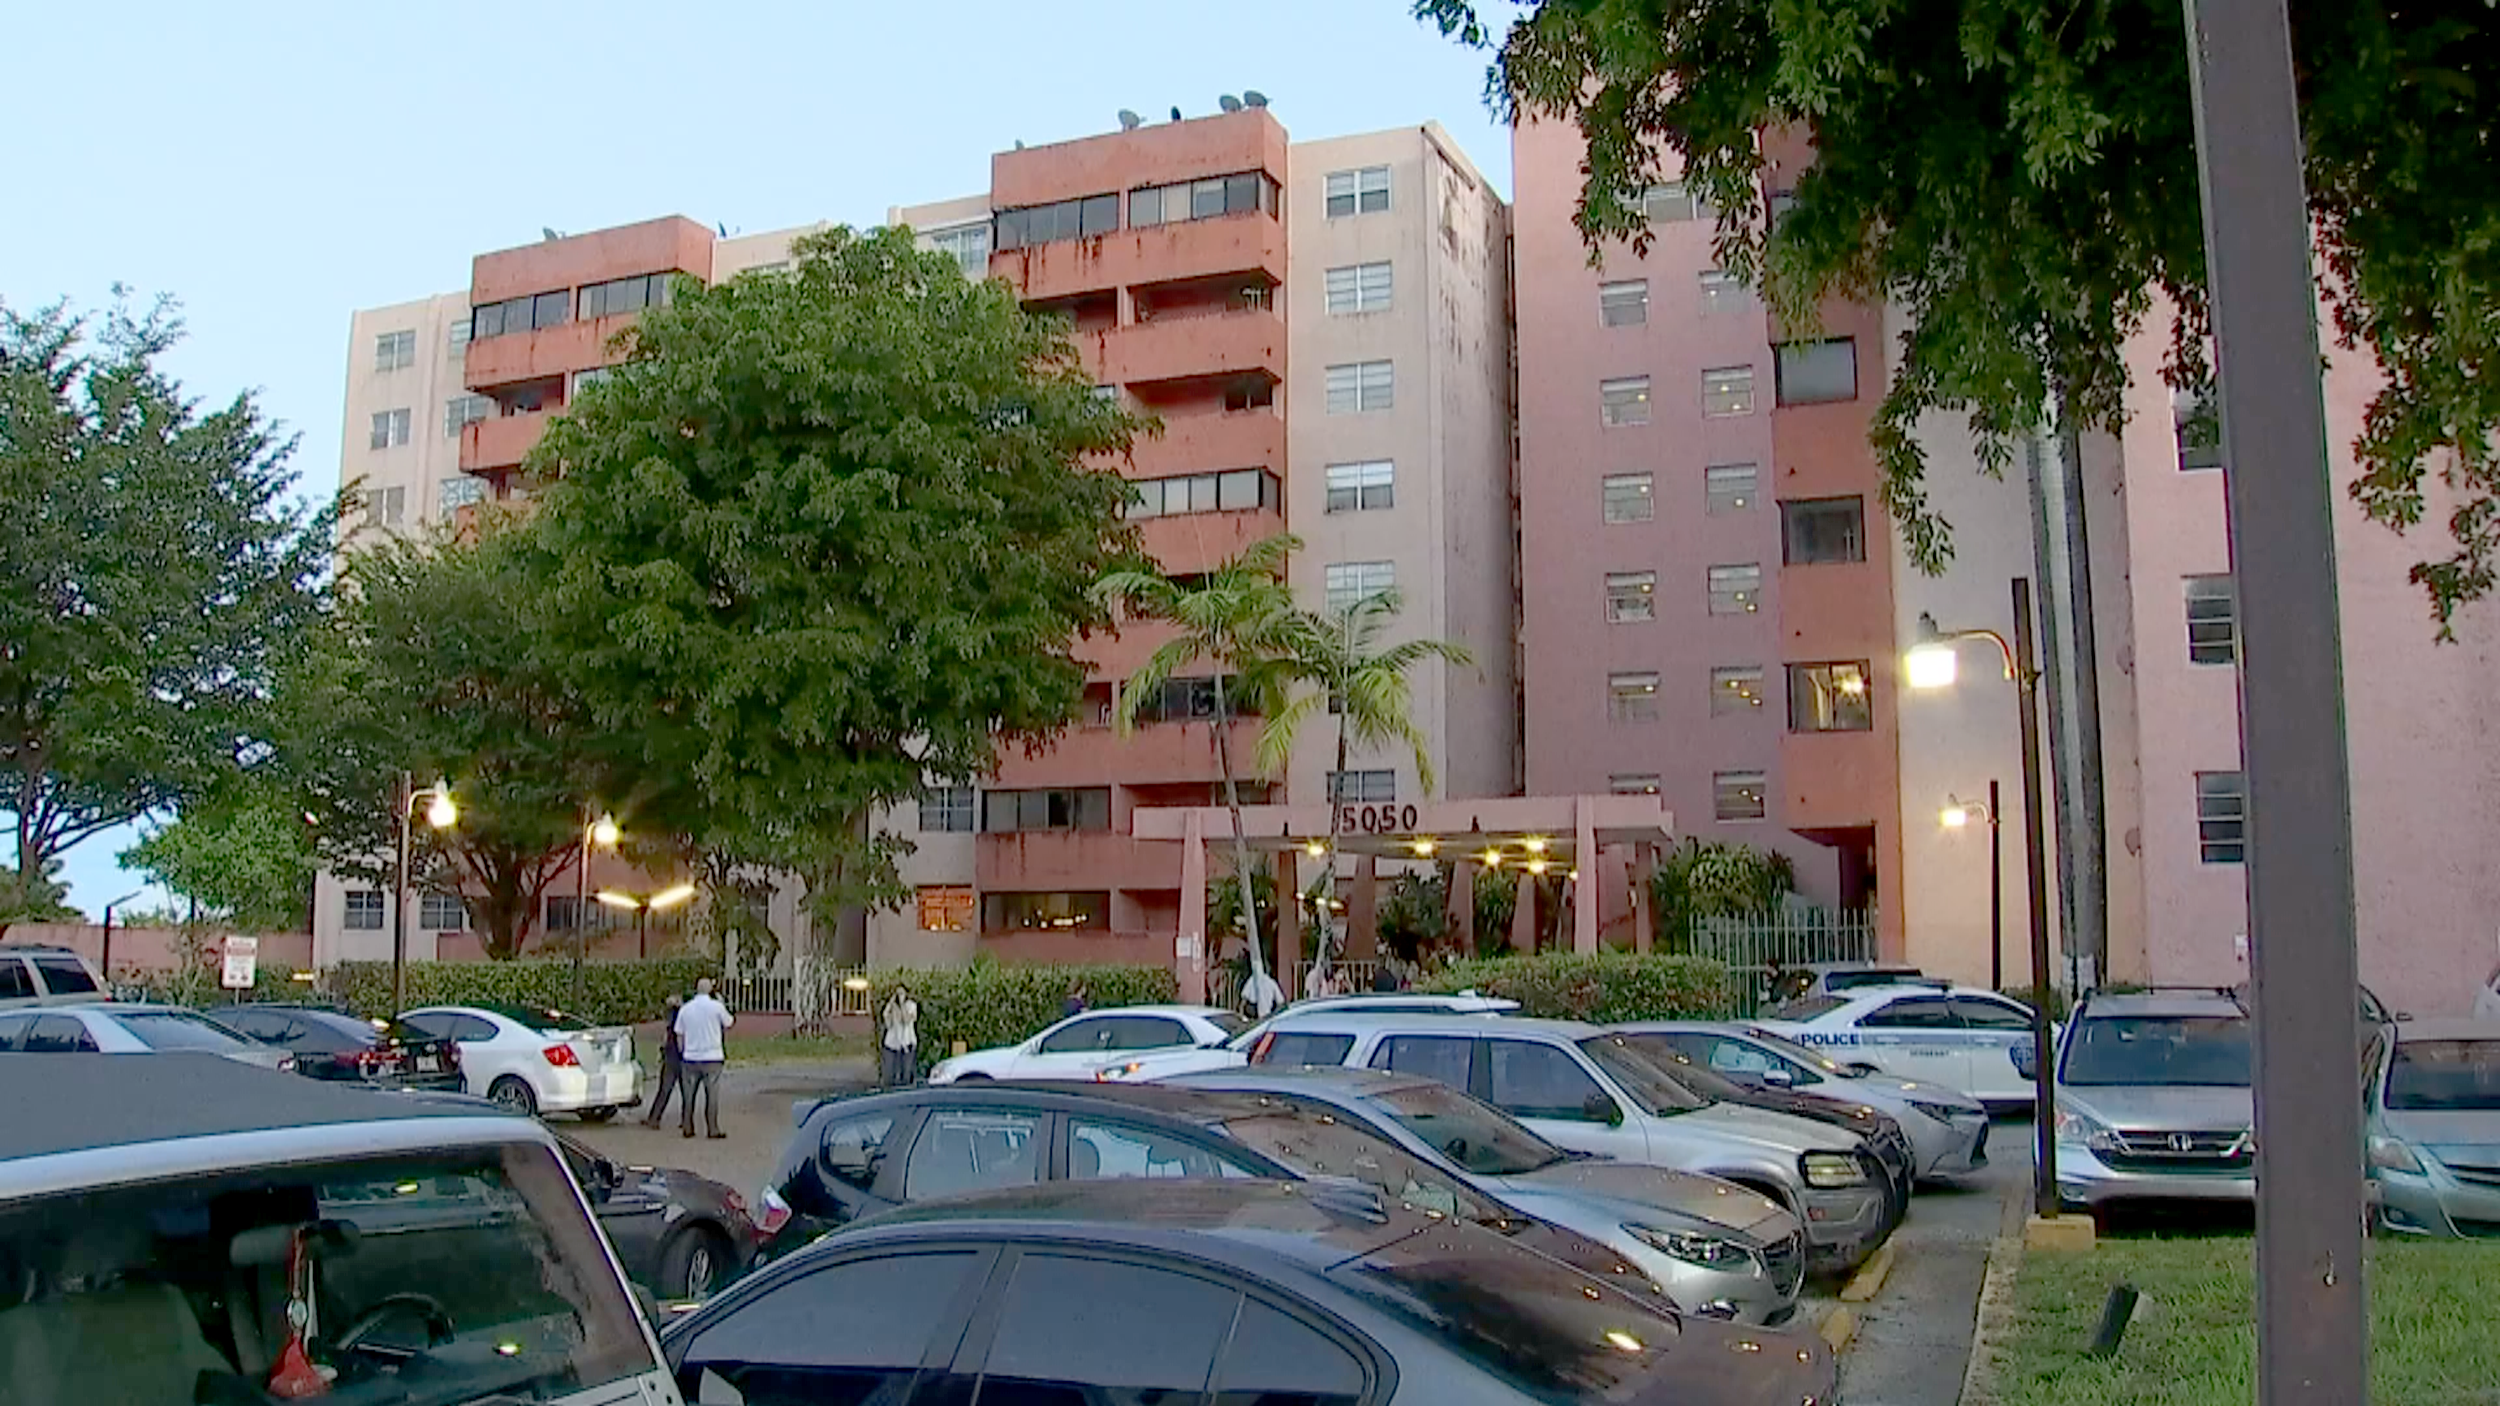 Hundreds of residents told to evacuate after Miami condo building deemed unsafe